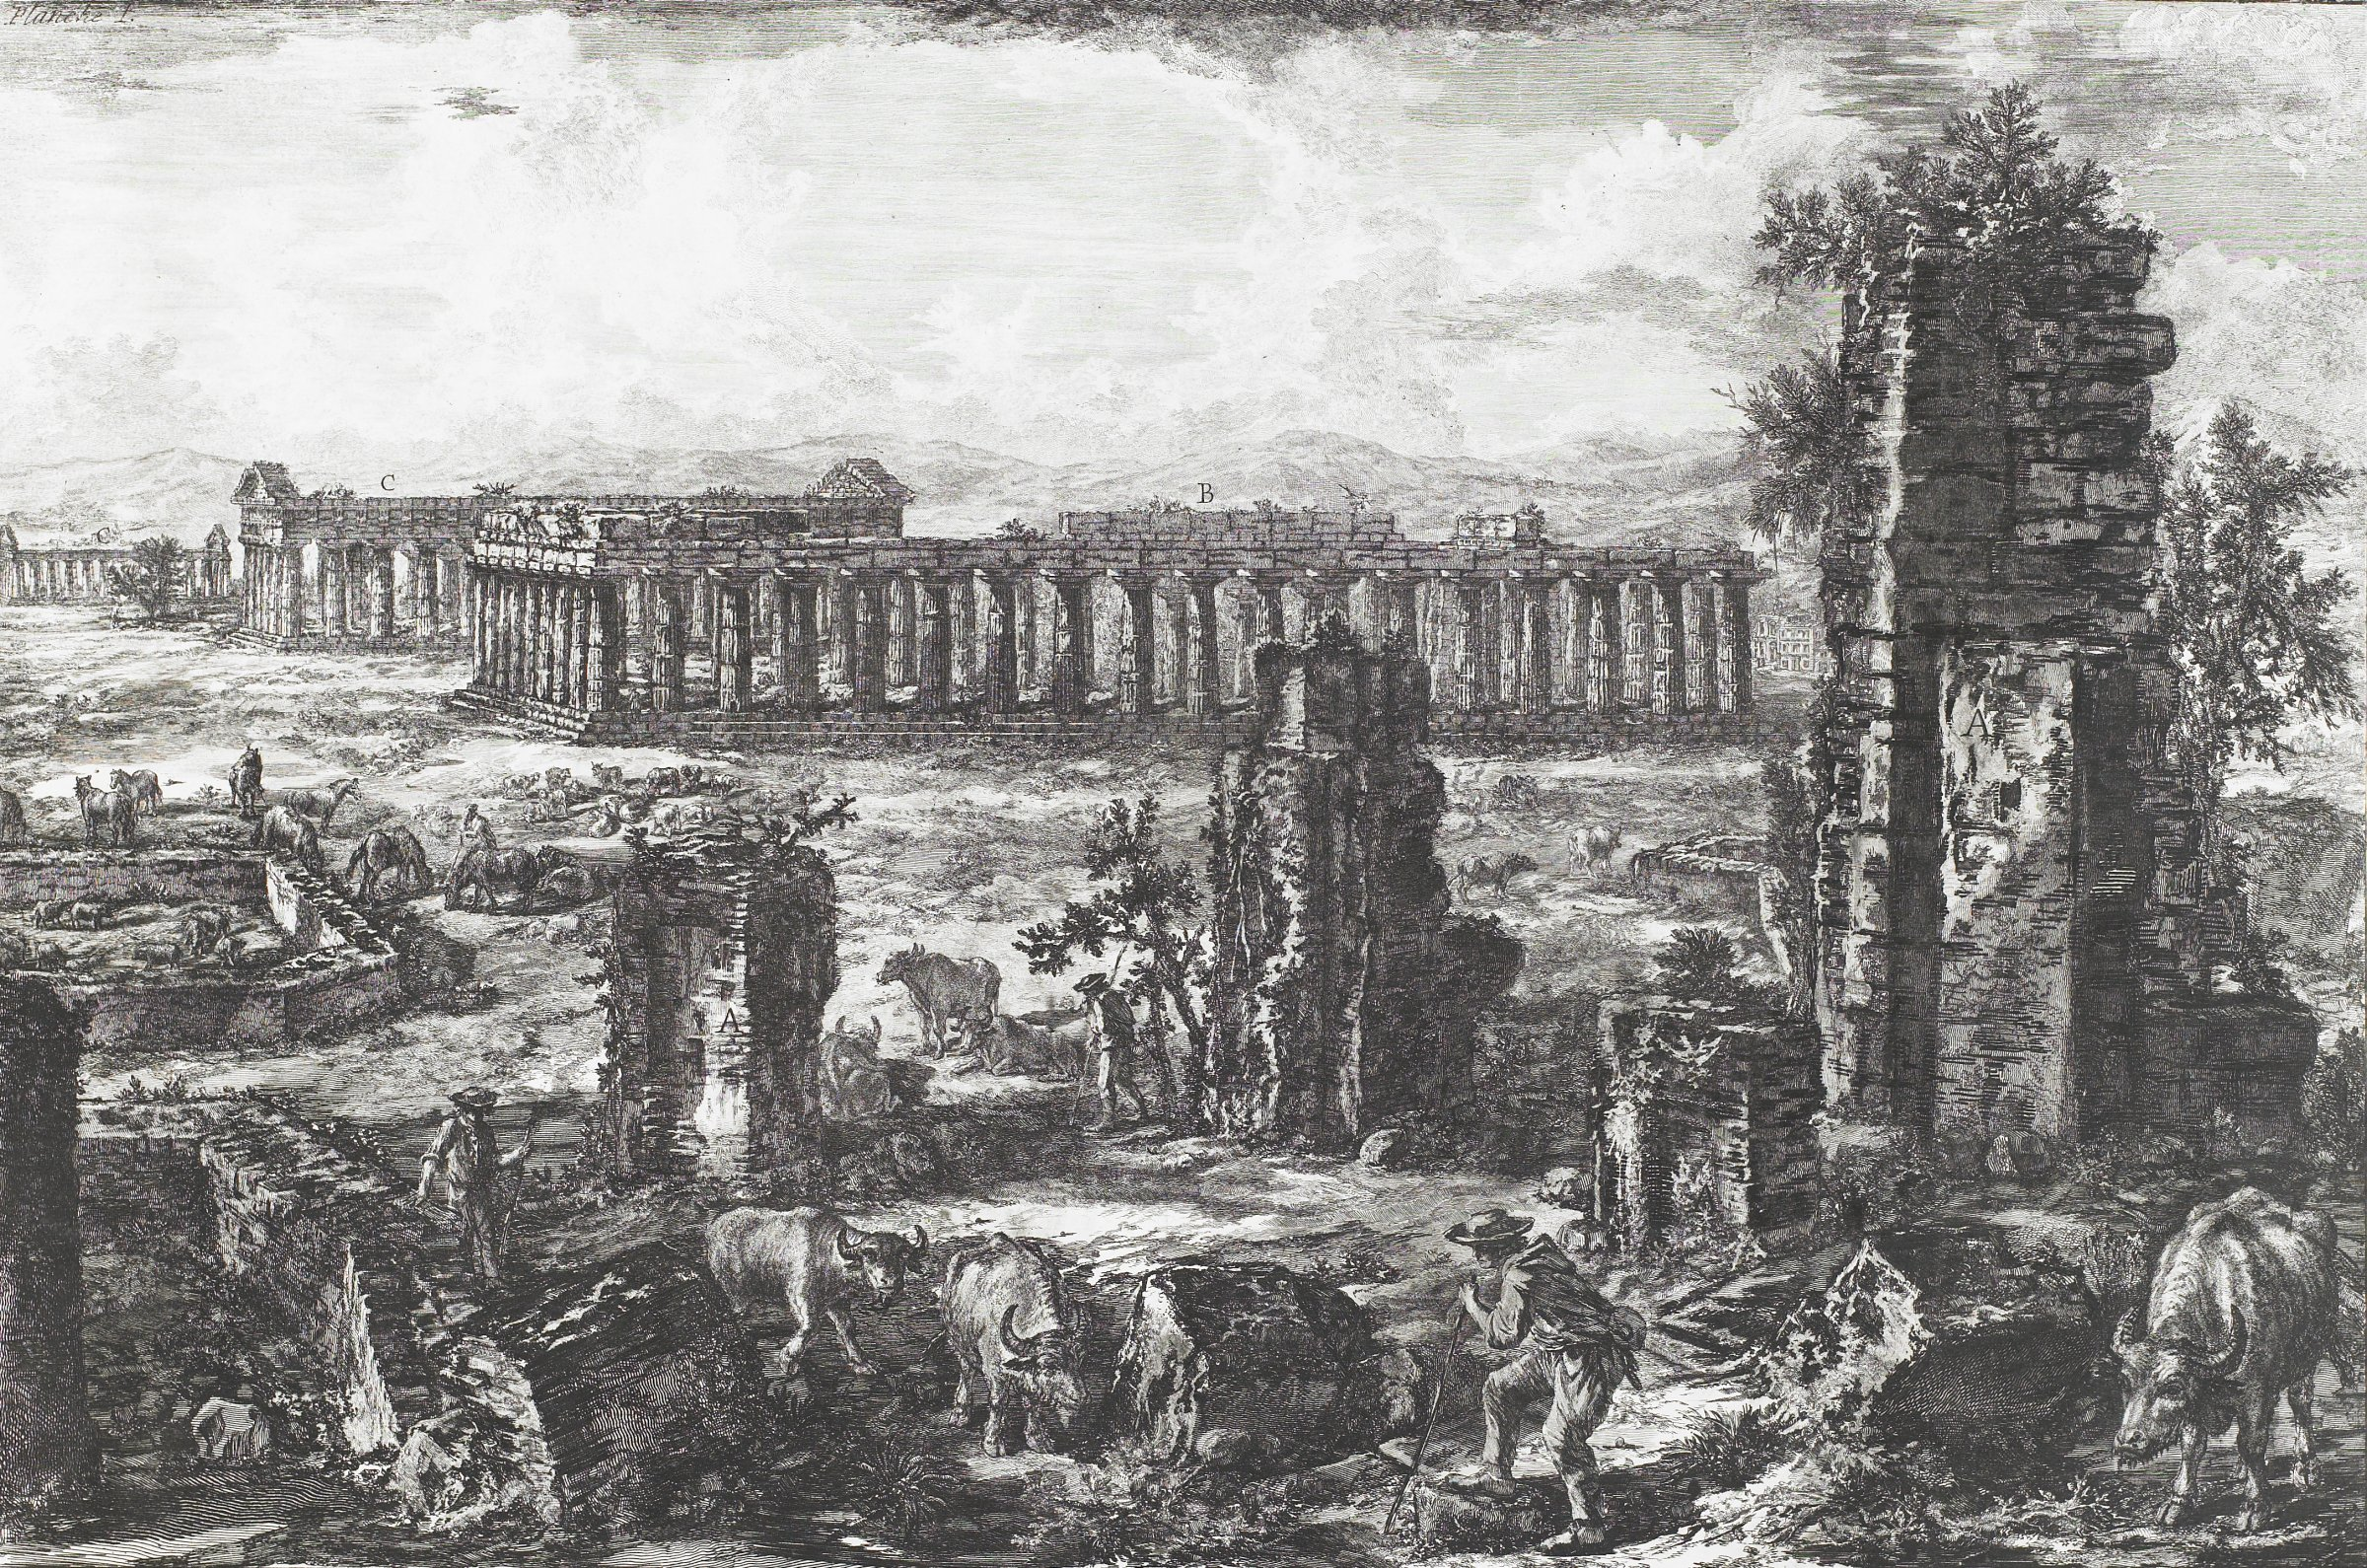 View of the Remains of the Walls and the Ancient City of Paestum, Giovanni Battista Piranesi, etching